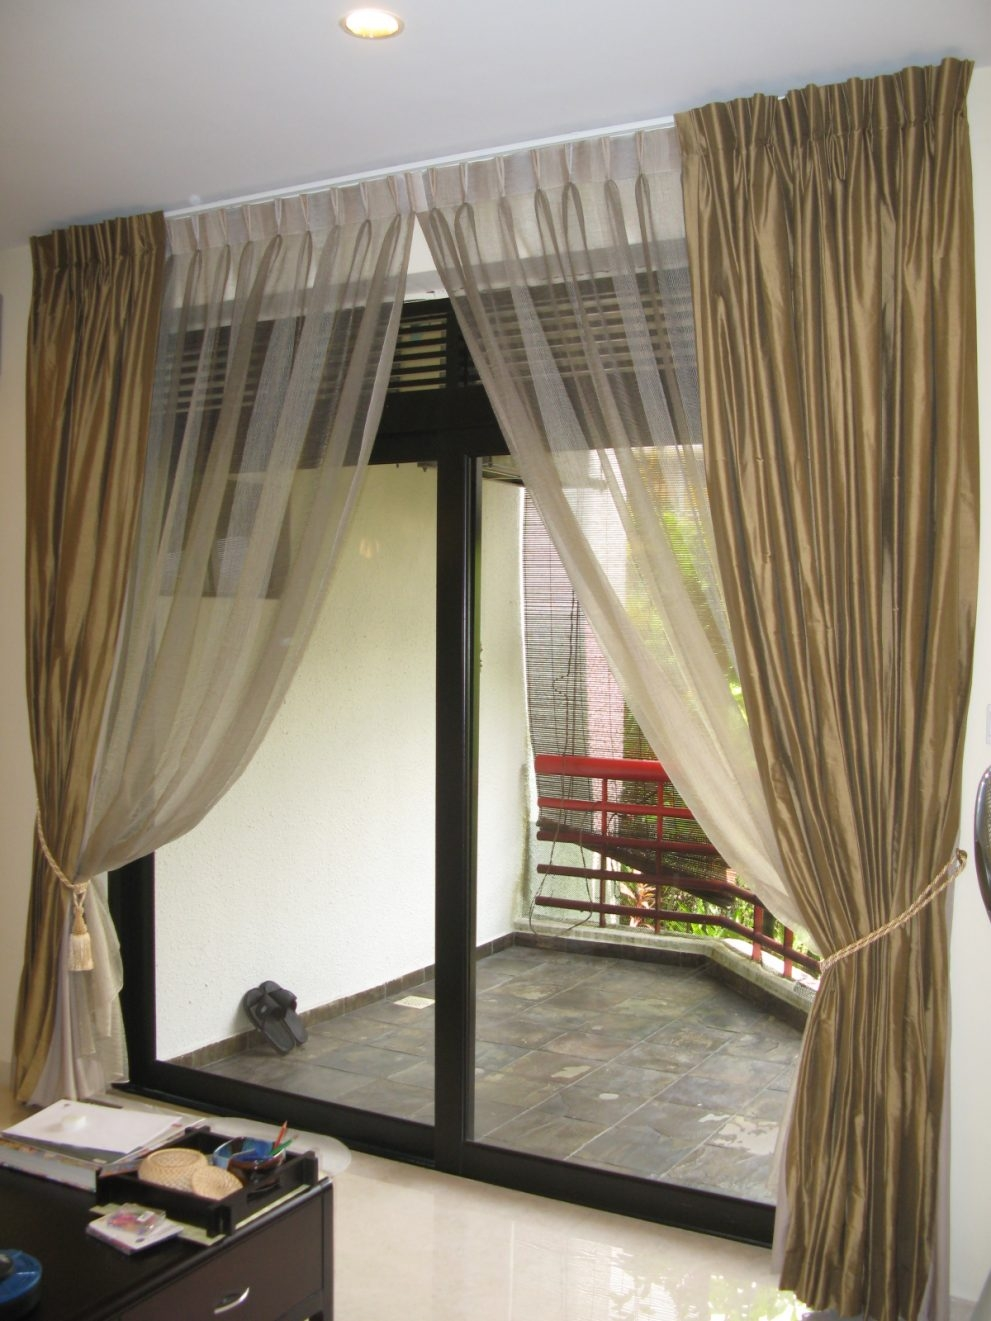 Cool Sliding Glass Door Curtains 141 Sliding Glass Door Curtains Within Sliding Glass Door Curtains (Image 3 of 25)